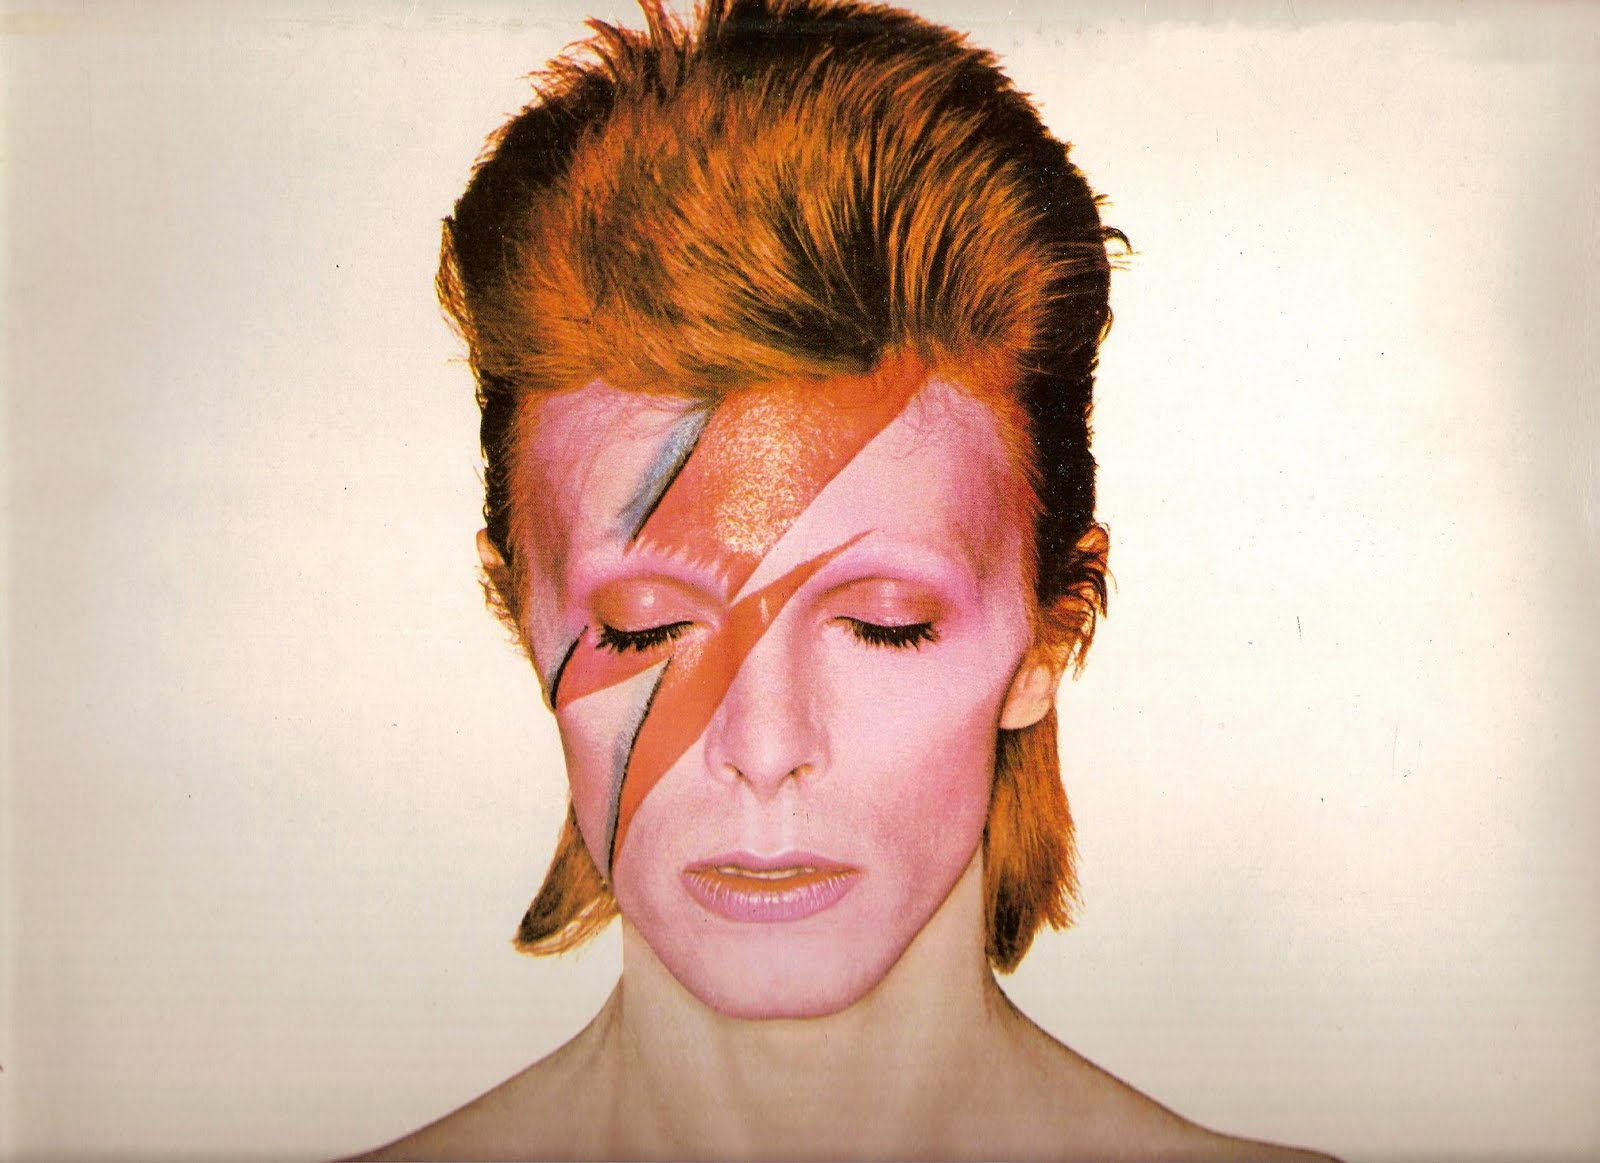 Four. Four Bowies make a bunch - and so do many more.